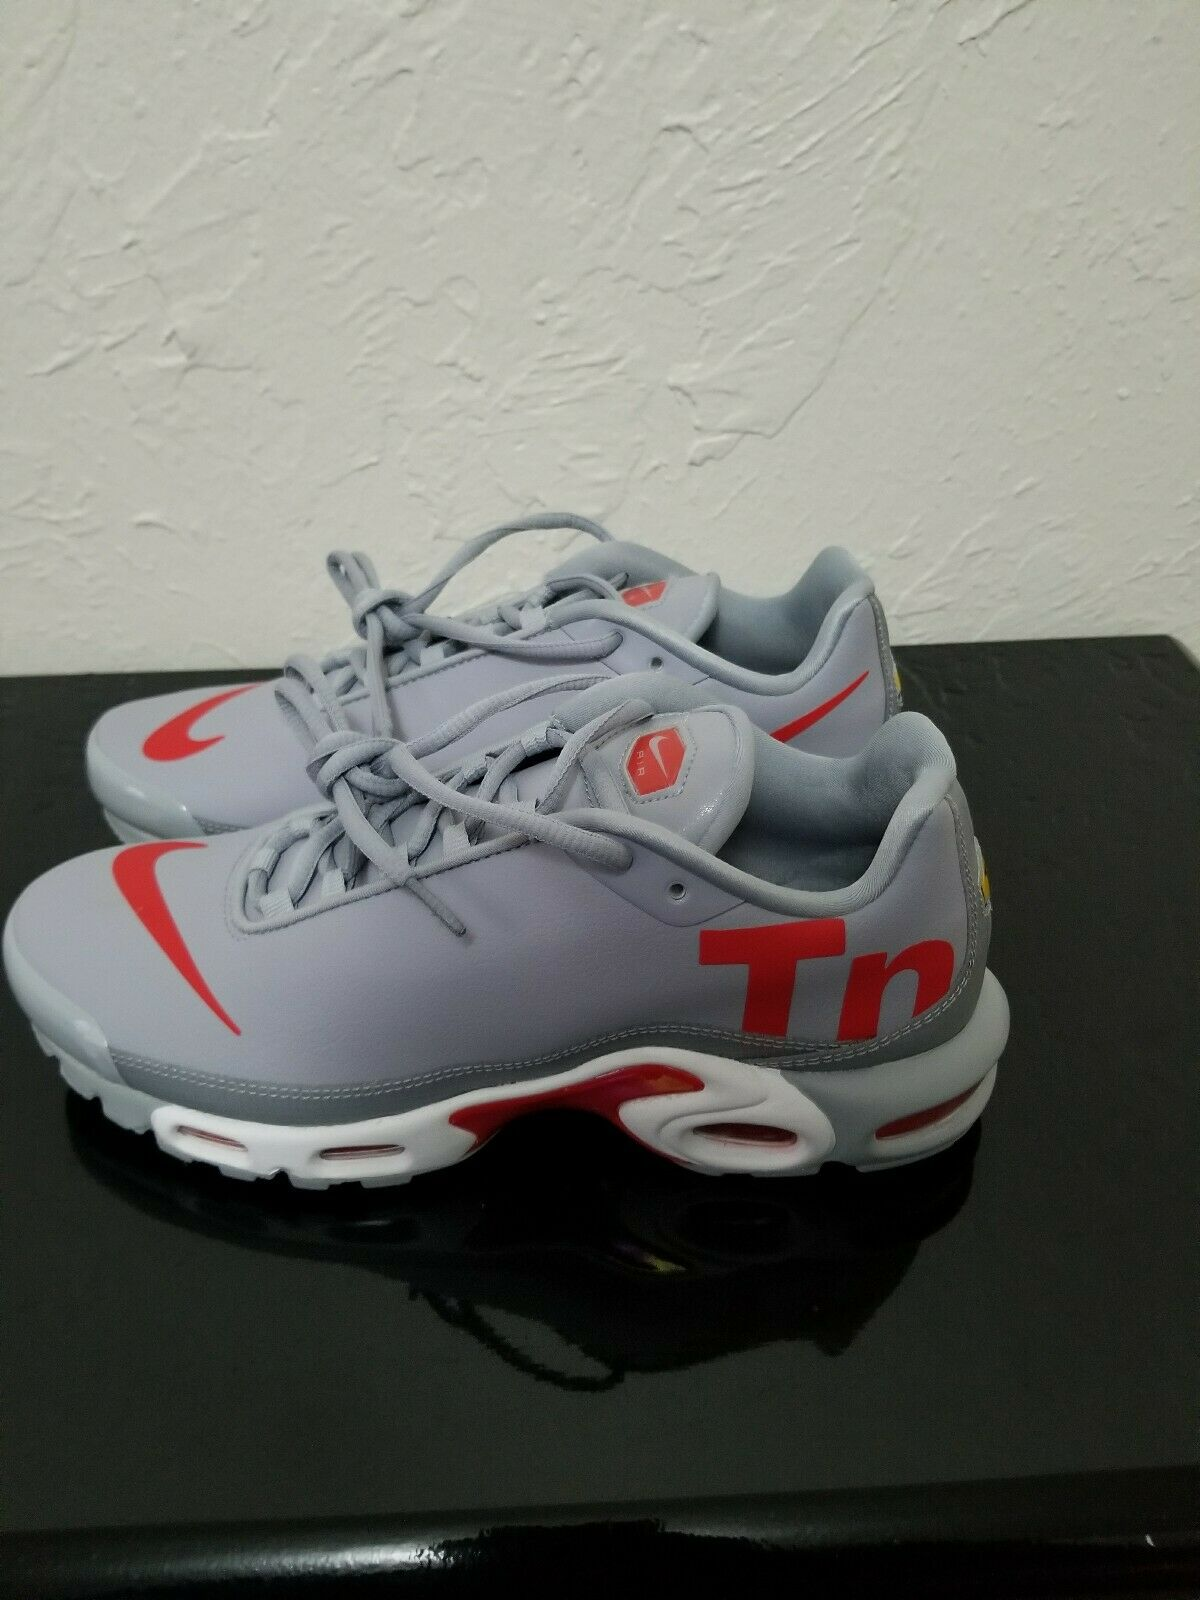 Nike Air Max Plus TN Mercurial Wolf Grey Red White Men's AQ1088-001 Size 9